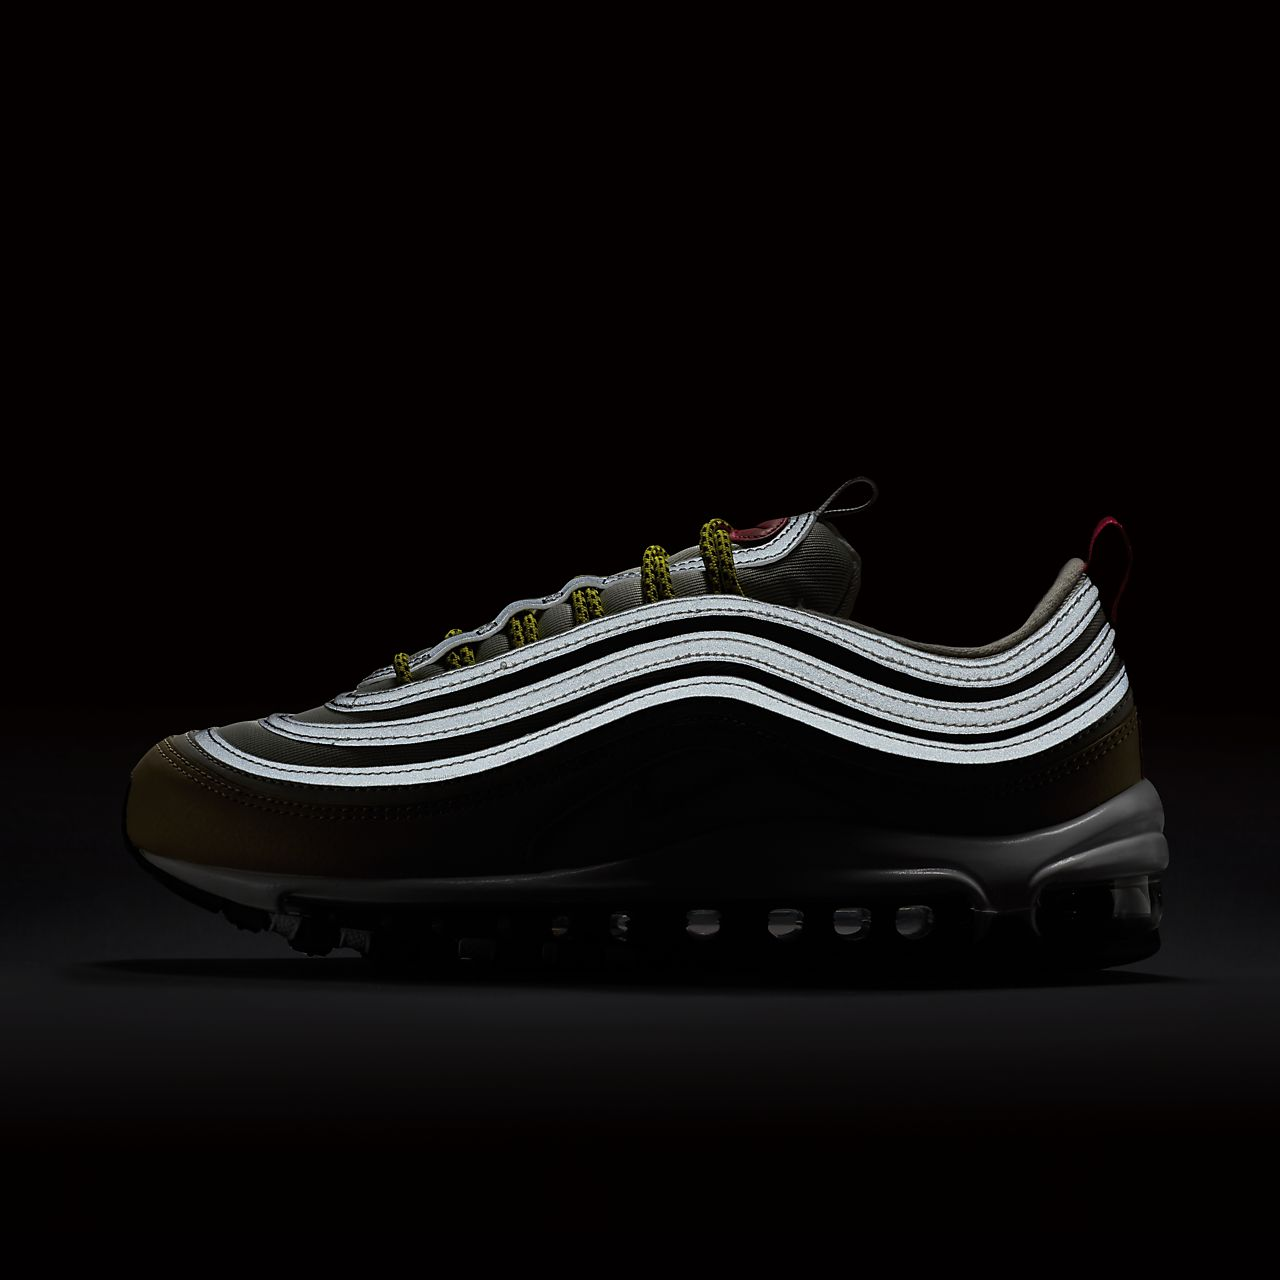 nike air max 97 chaussures. Black Bedroom Furniture Sets. Home Design Ideas